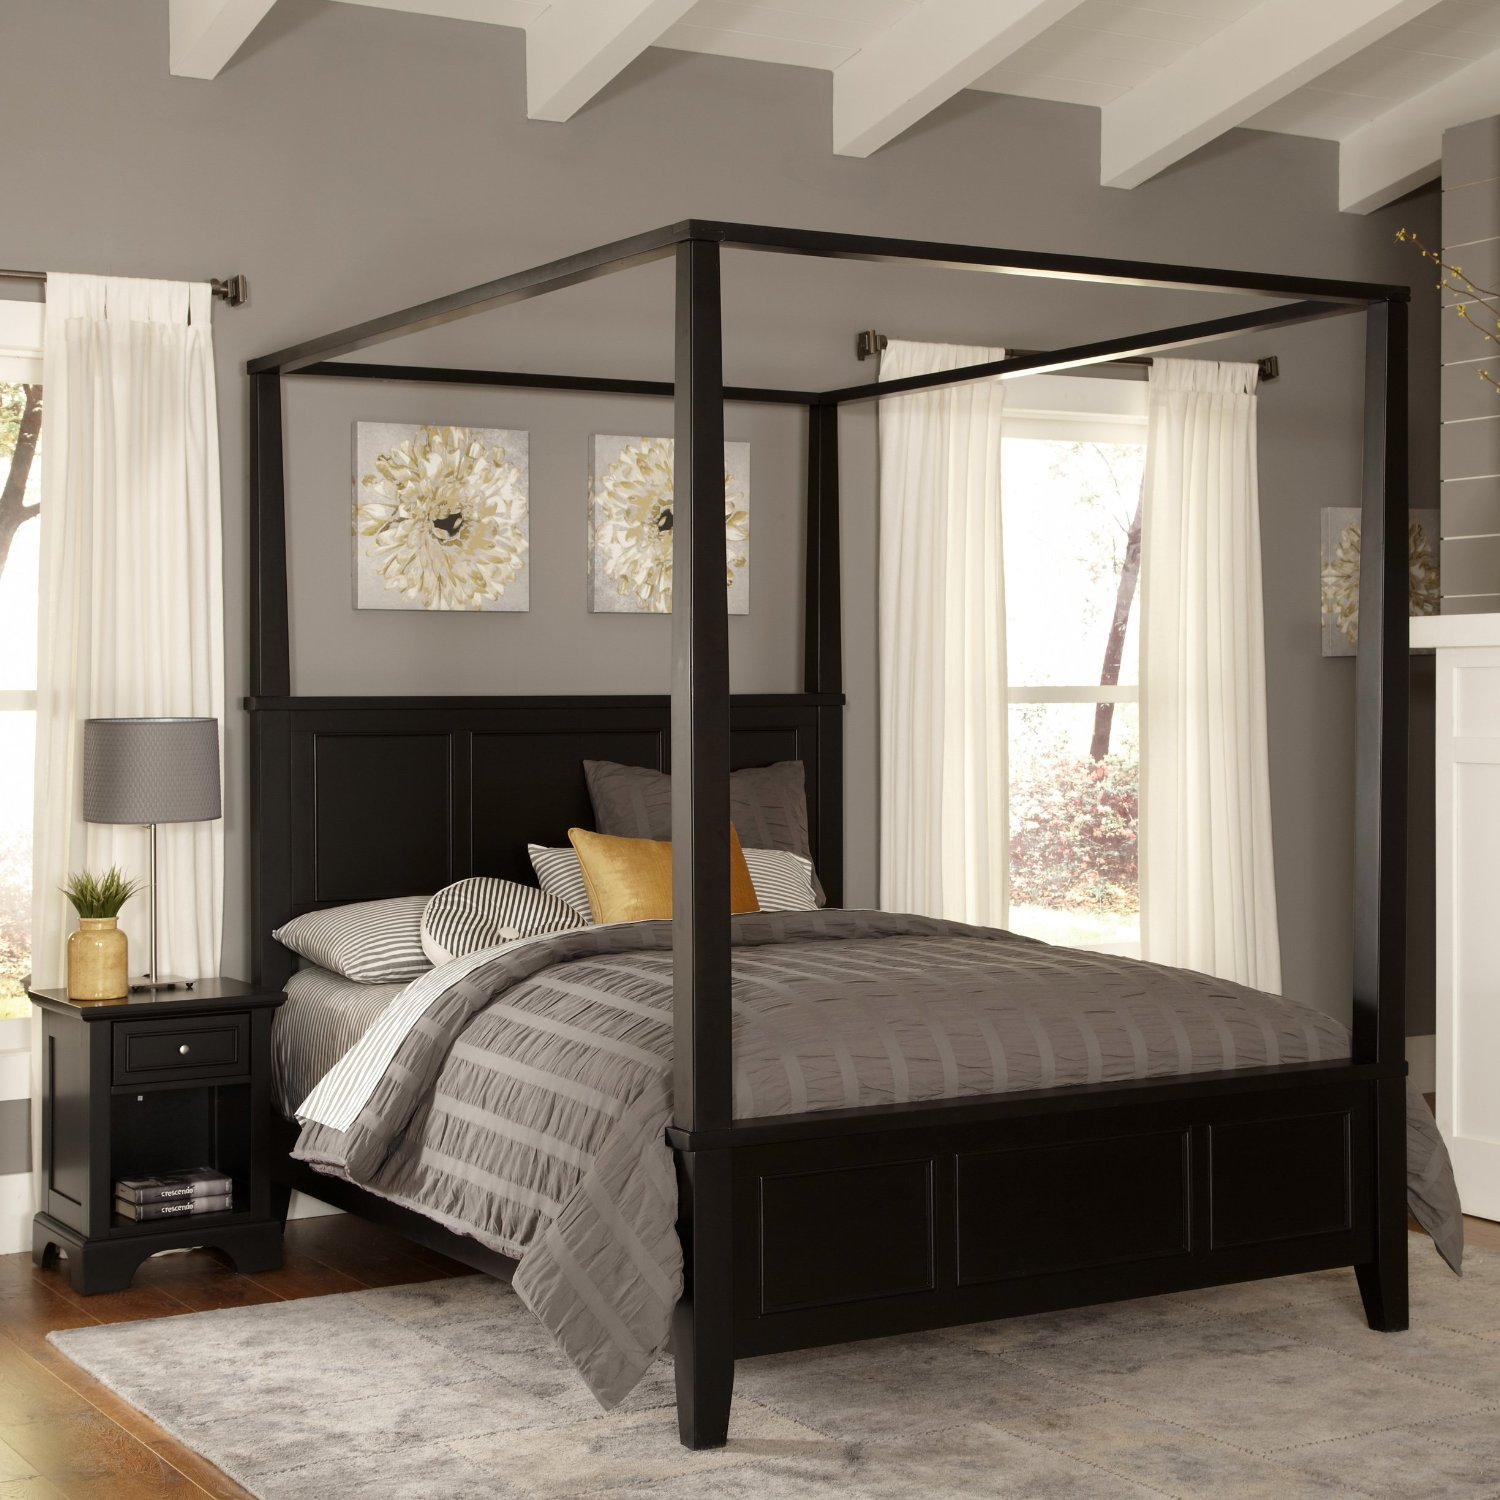 Home Styles Bedford Black King Canopy Bed and Night Stand